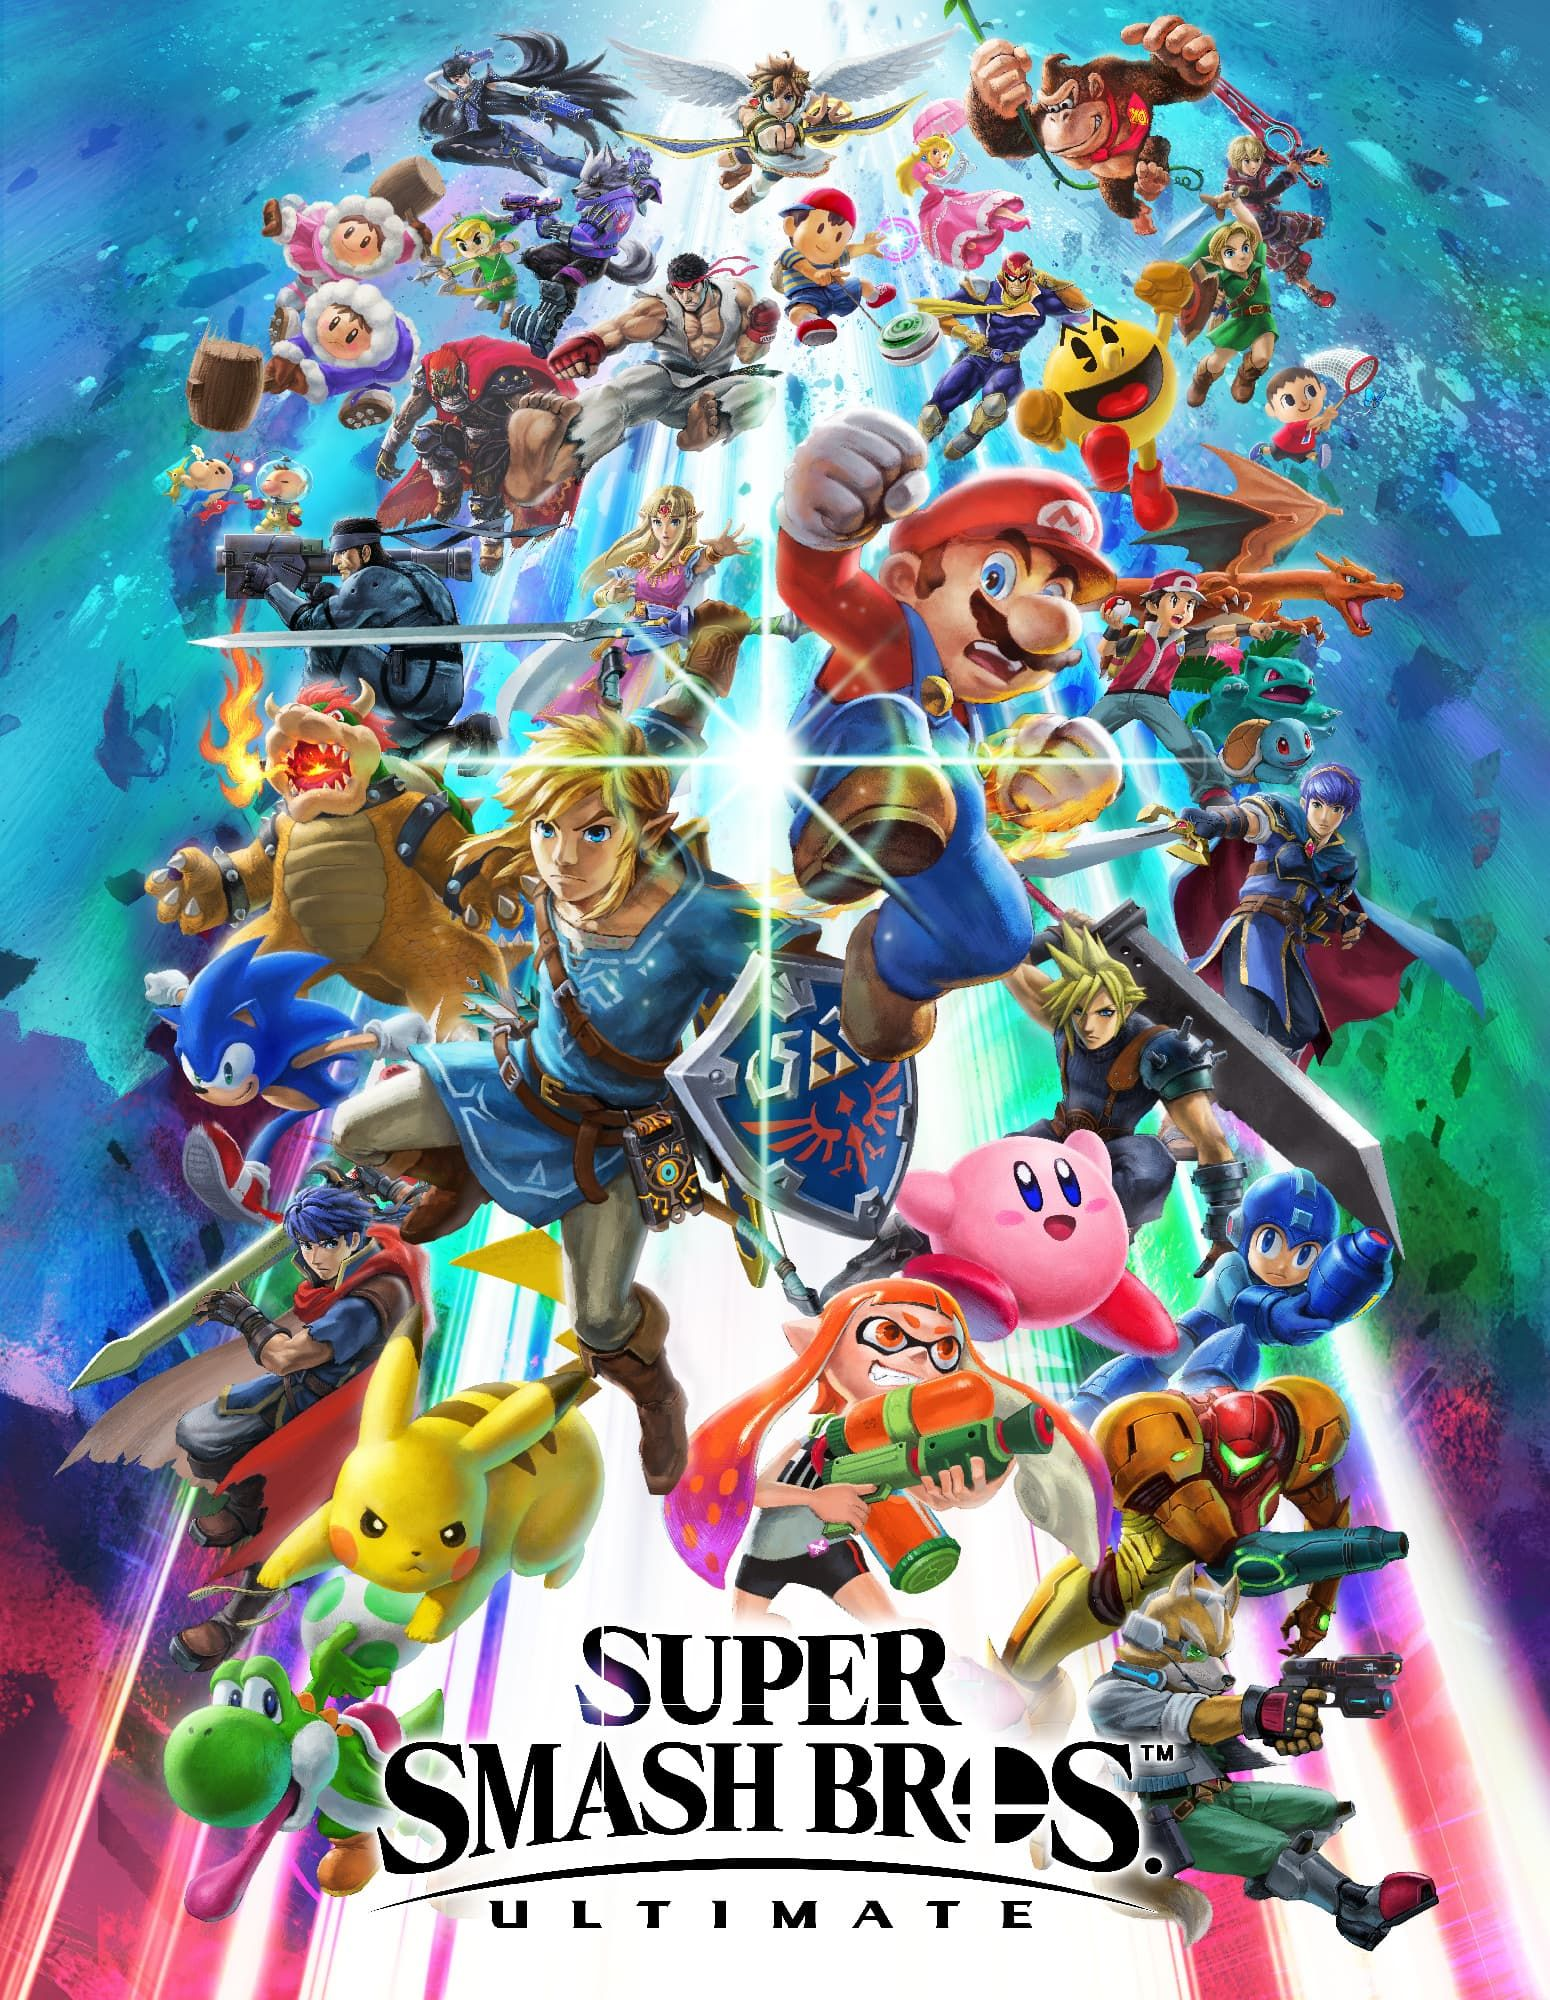 Box art - Super Smash Bros Ultimate